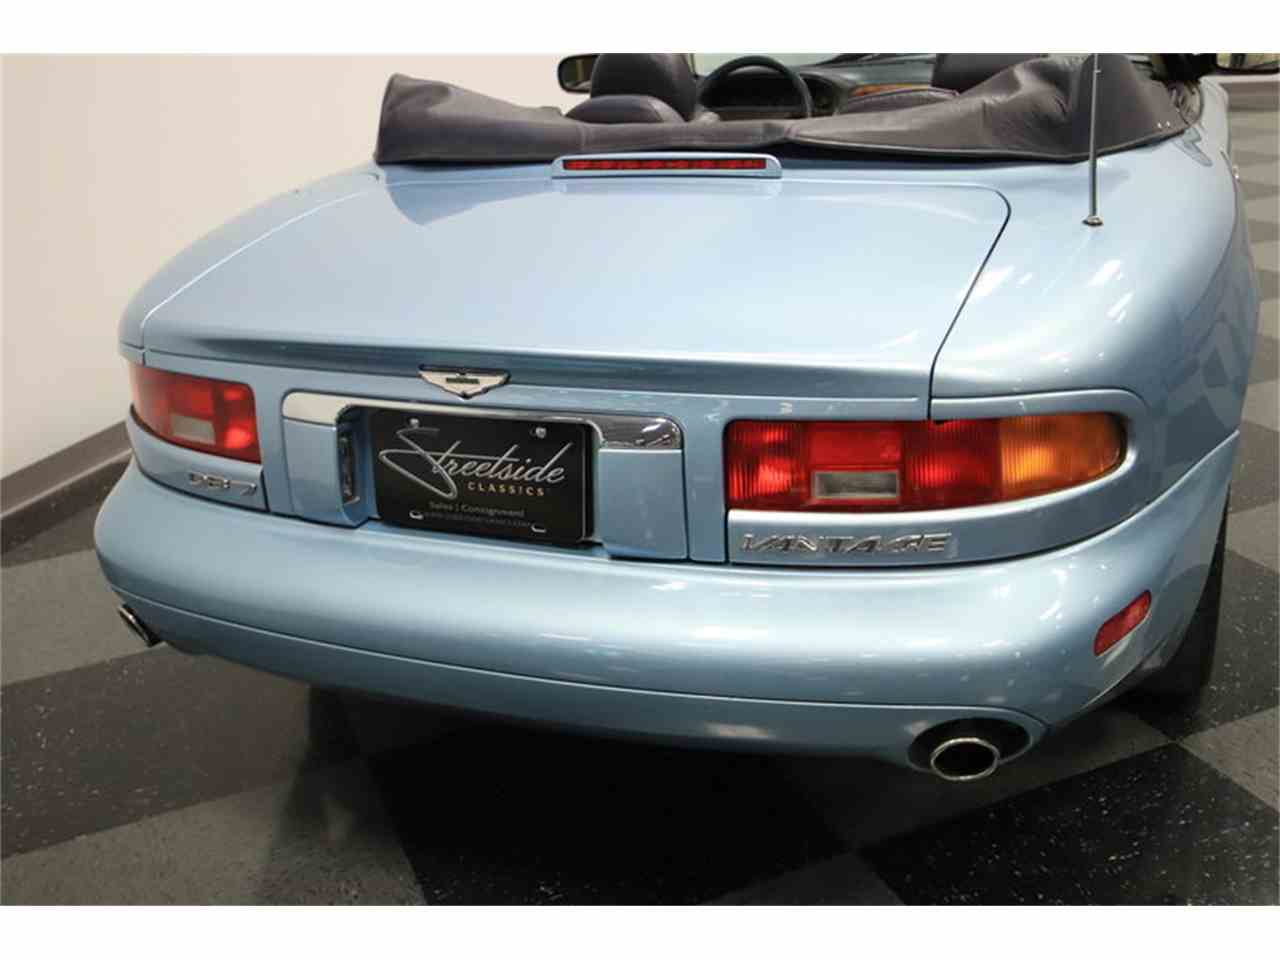 Large Picture of '00 Aston Martin DB7 Vantage Volante located in Arizona - $39,995.00 - M73B